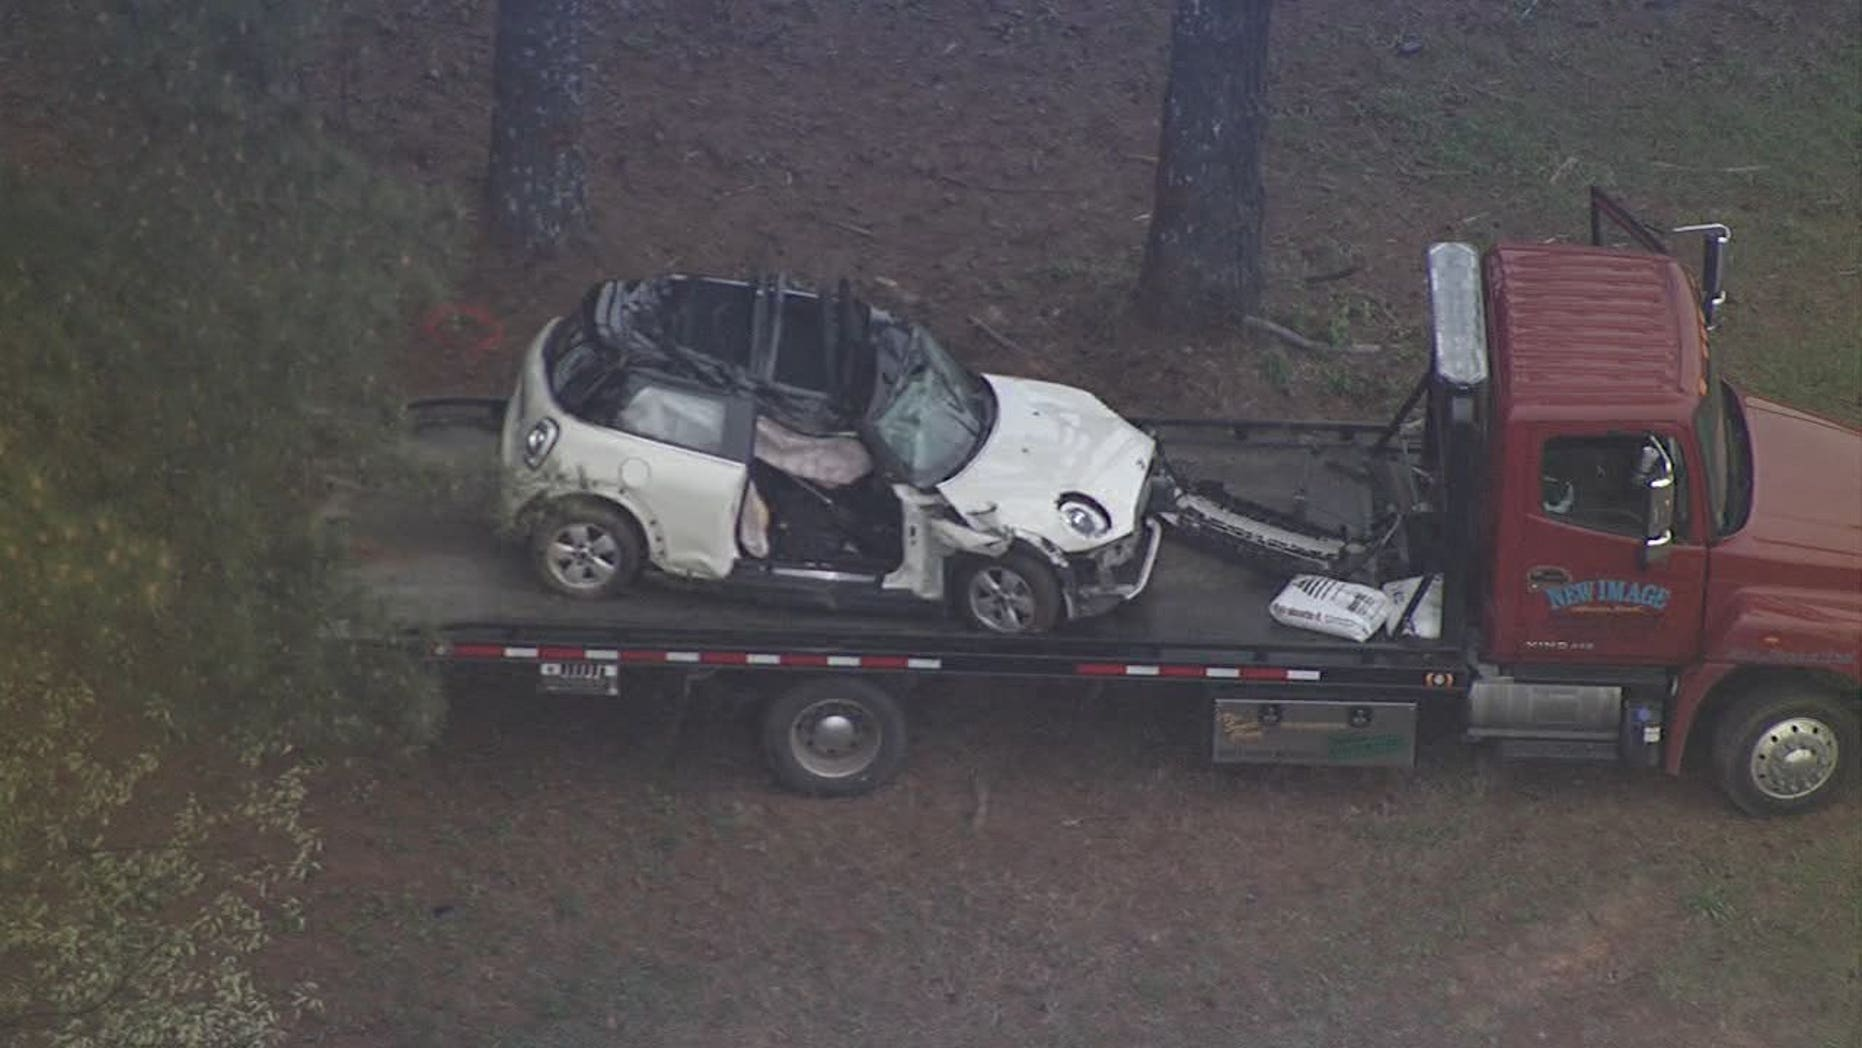 Cristina Pavon was going more than 106 mph when her car crashed into a tree, authorities said.